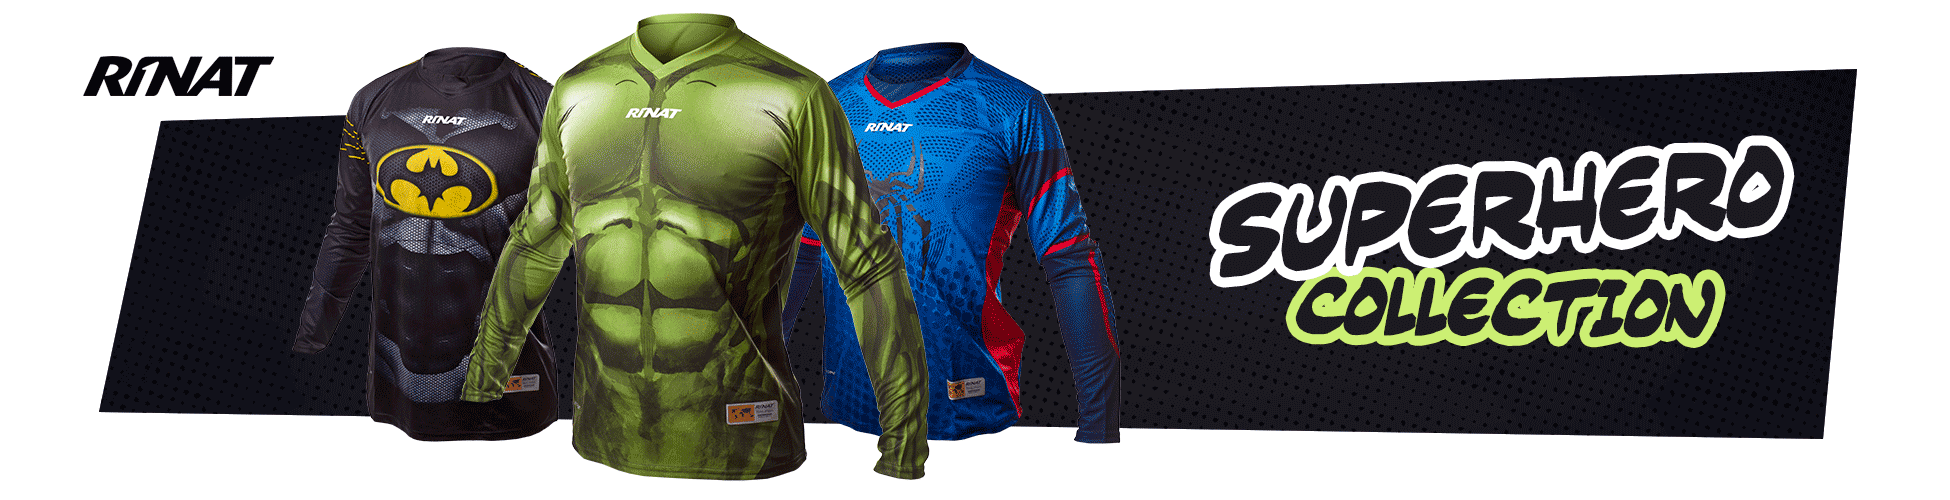 CAMISETAS RINAT SUPERHÉROES